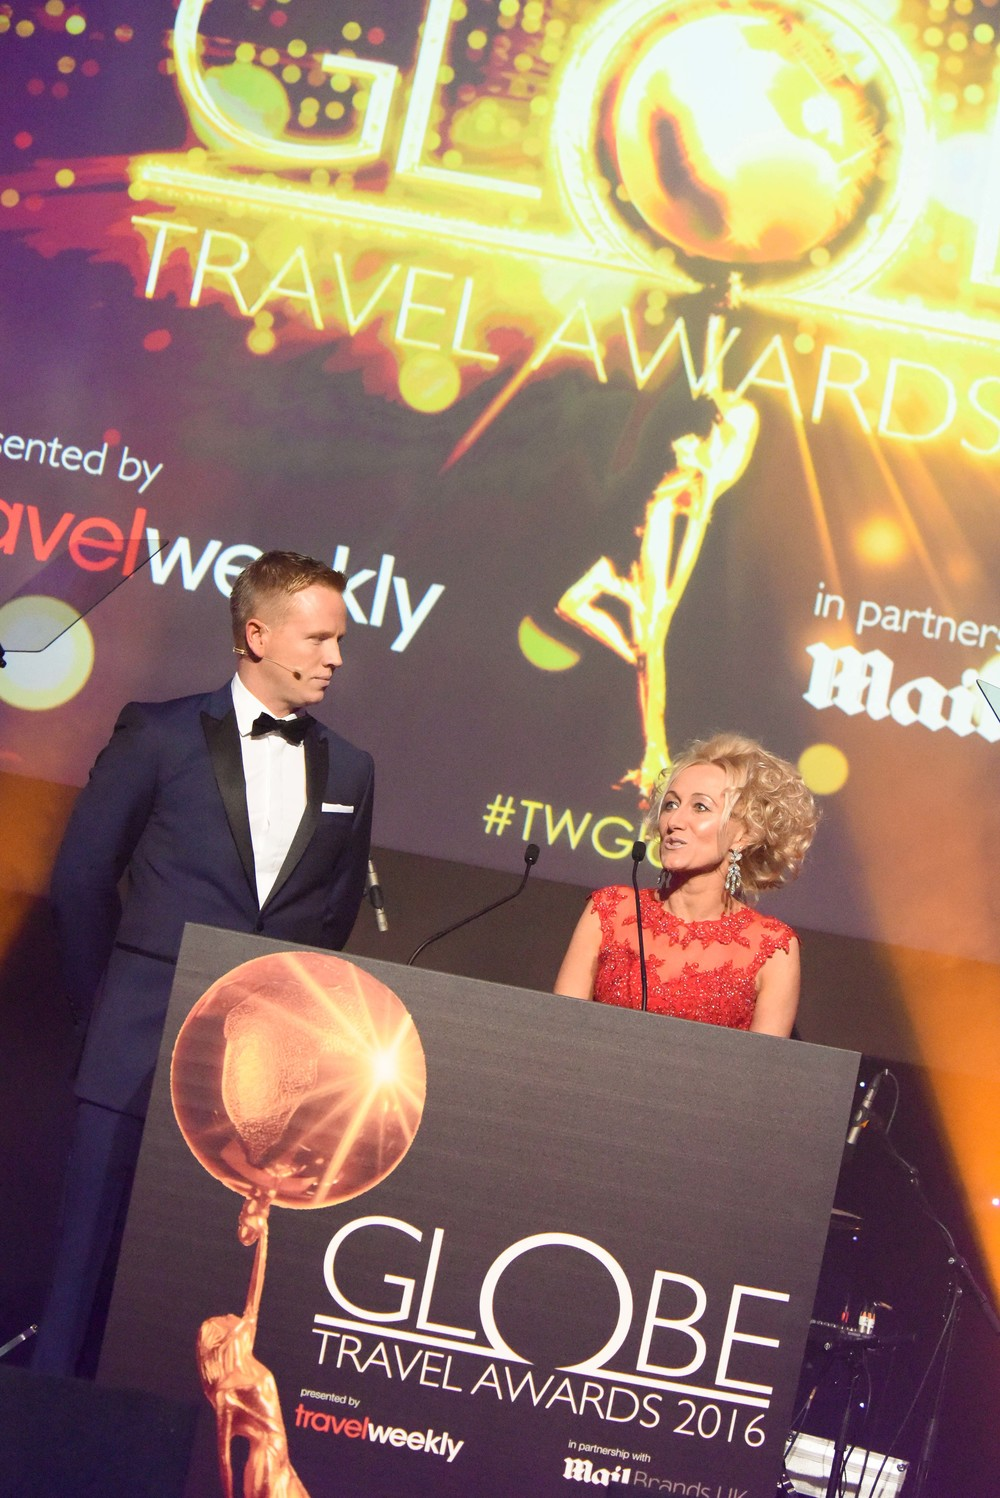 Travel Weekly's Managing Director Stuart Parish and Editor-in-chief Lucy Huxley. Copyright © teve Dunlop.